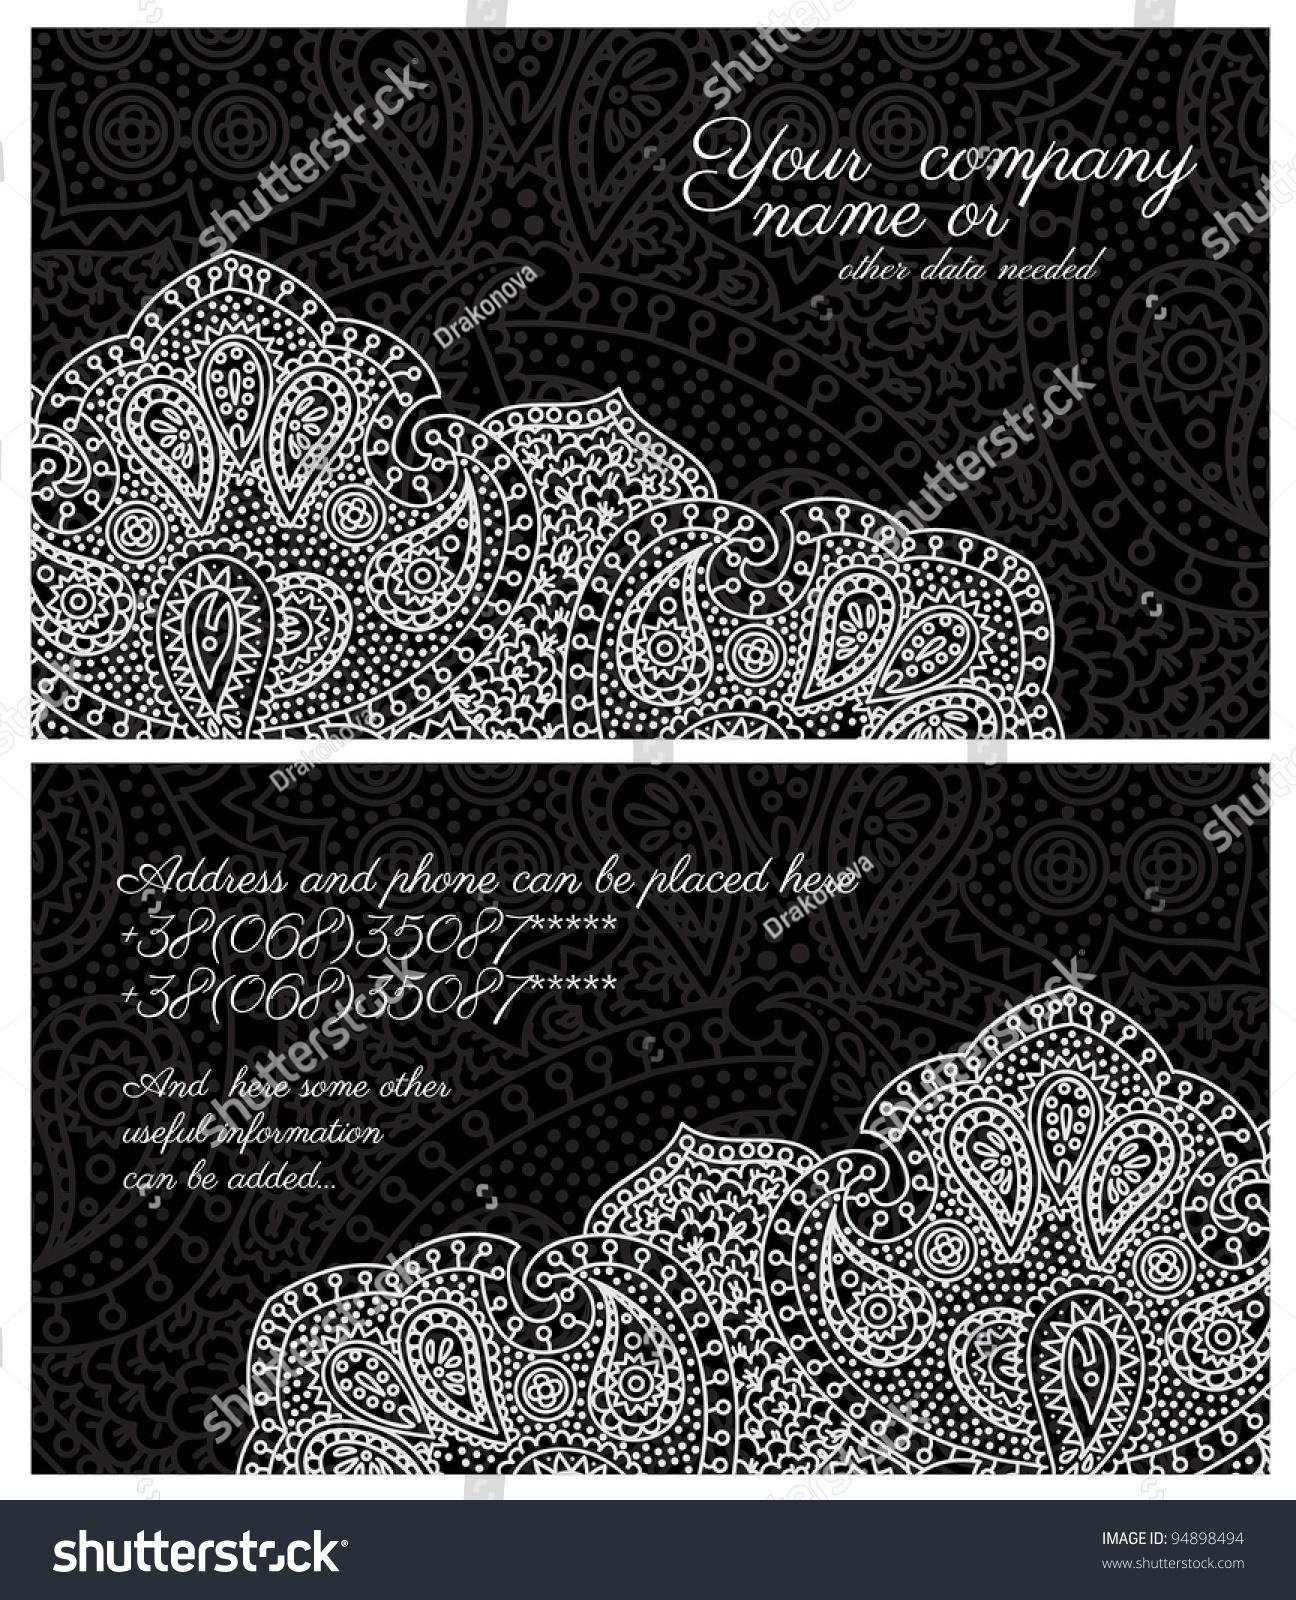 Paisley lace black business card stock vector 94898494 shutterstock paisley lace black business card magicingreecefo Images